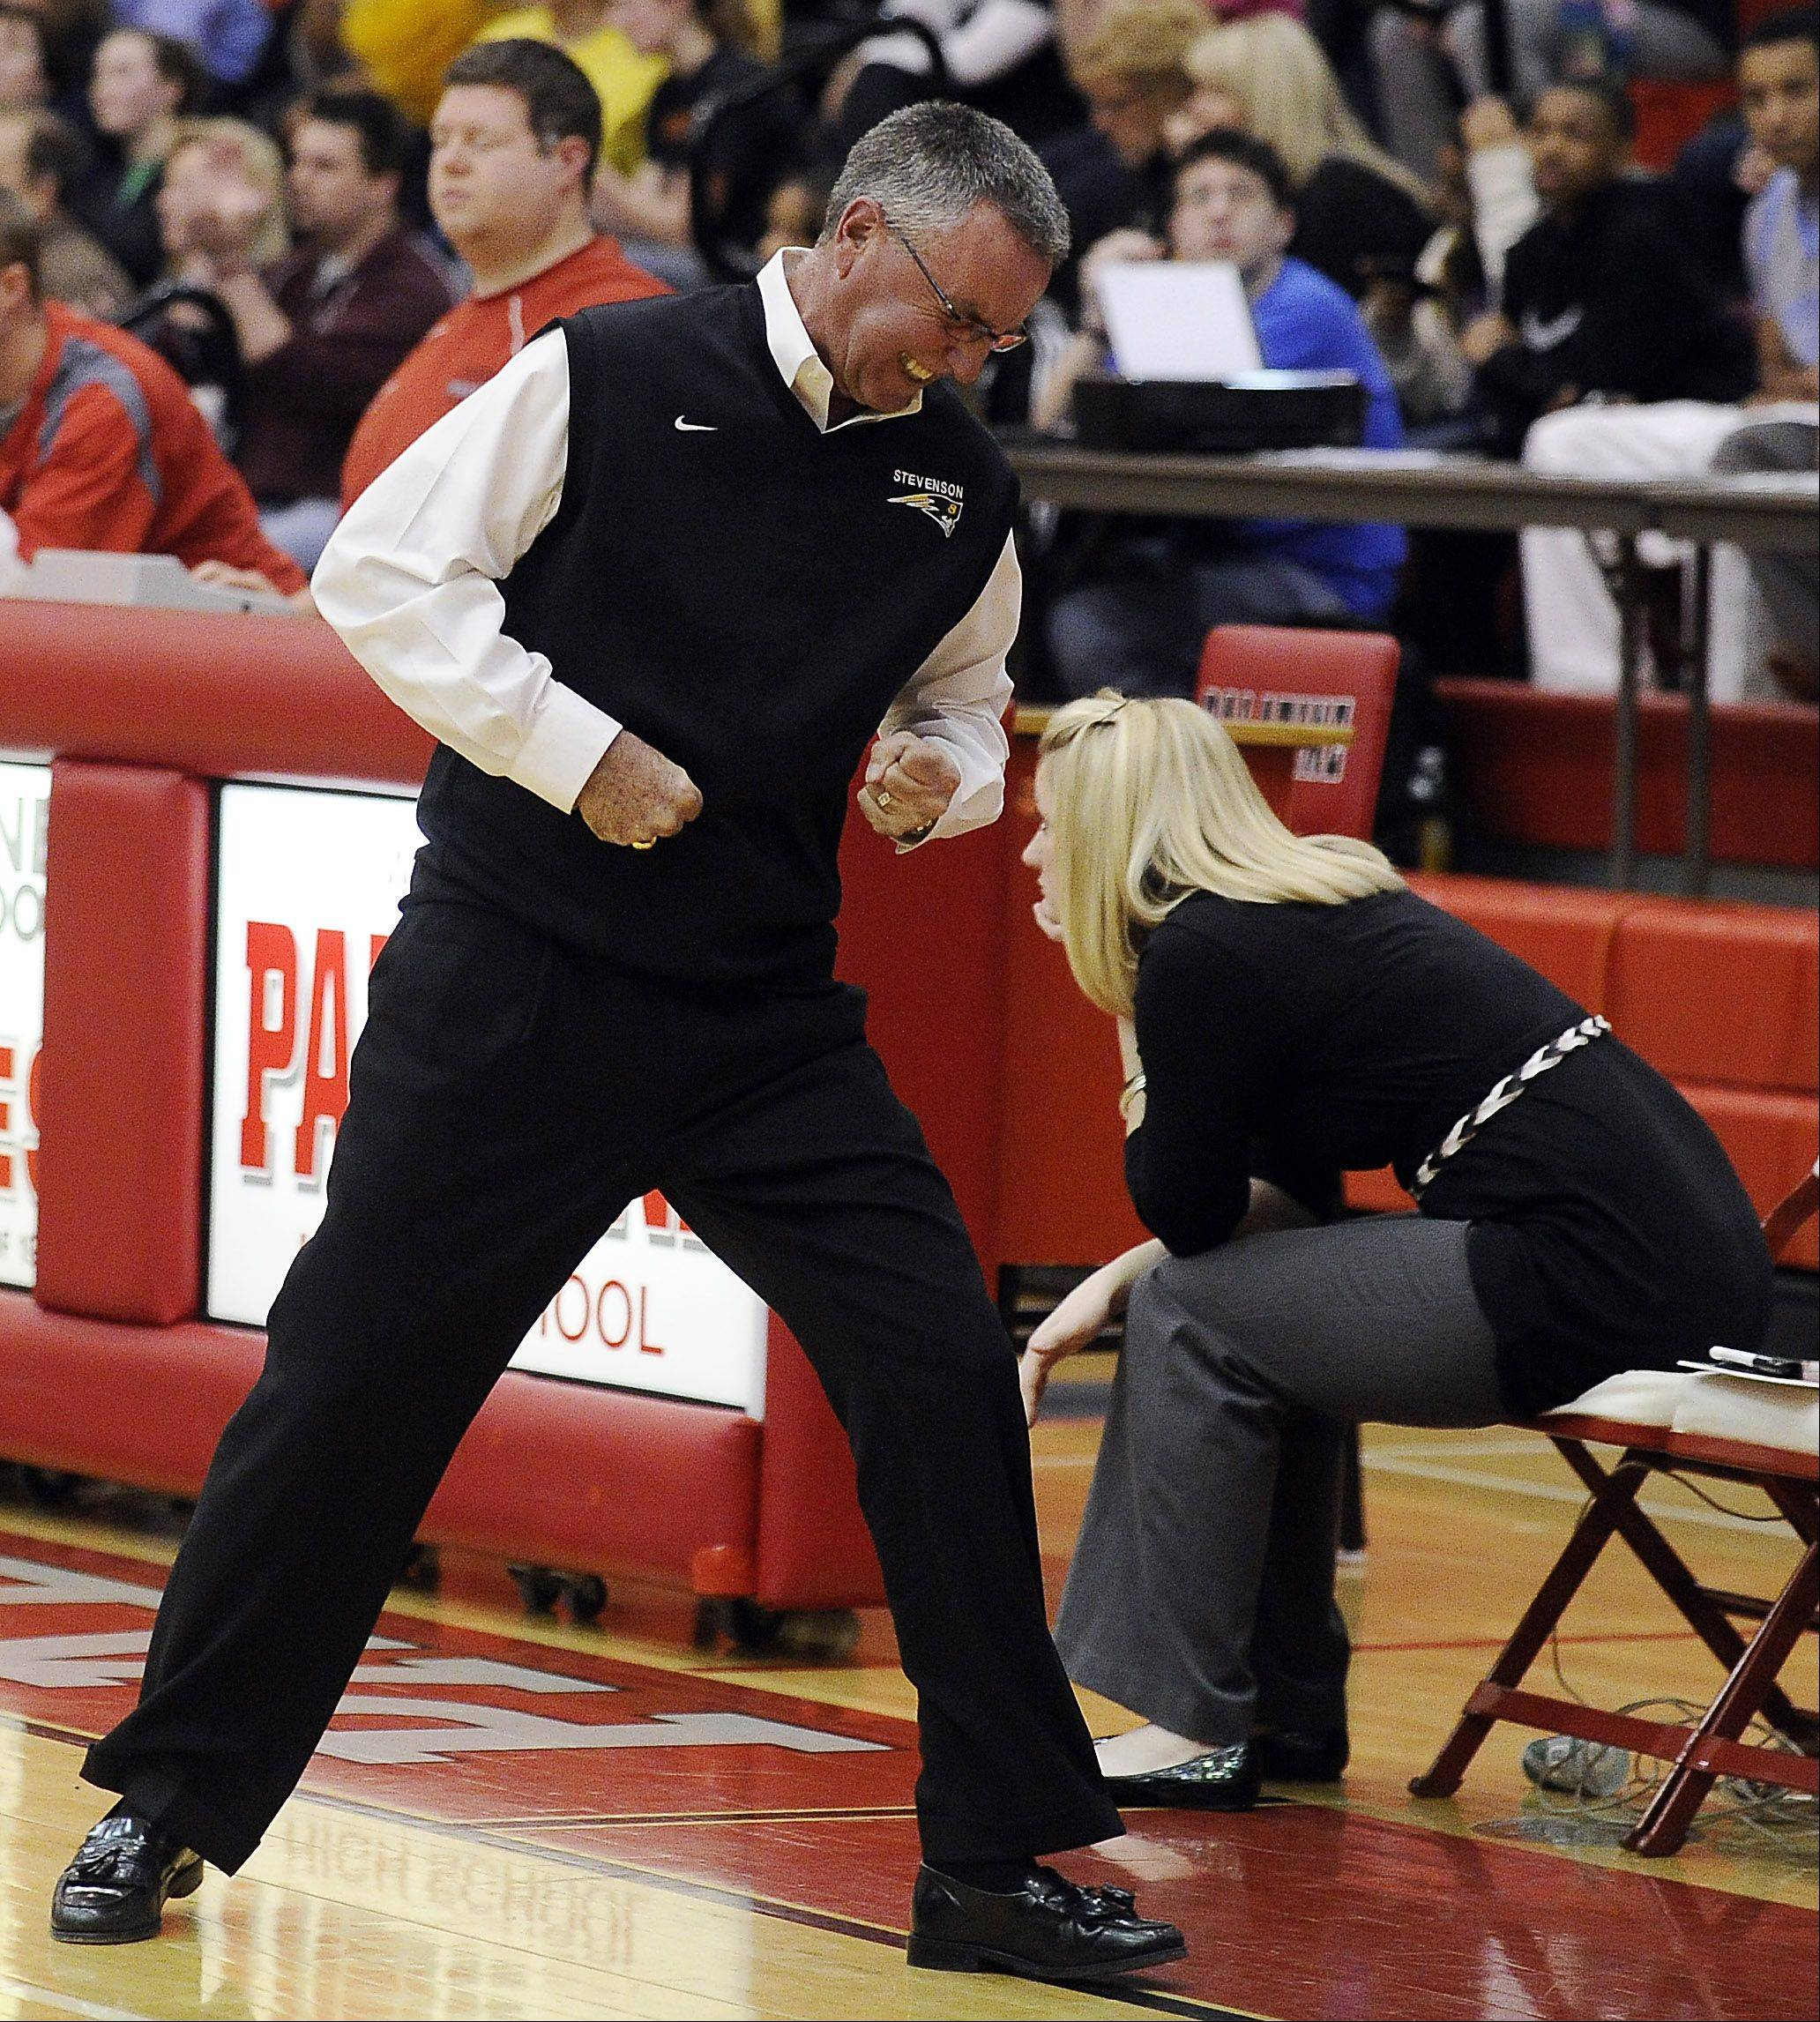 Stevenson coach Tom Dineen reacts during the game.